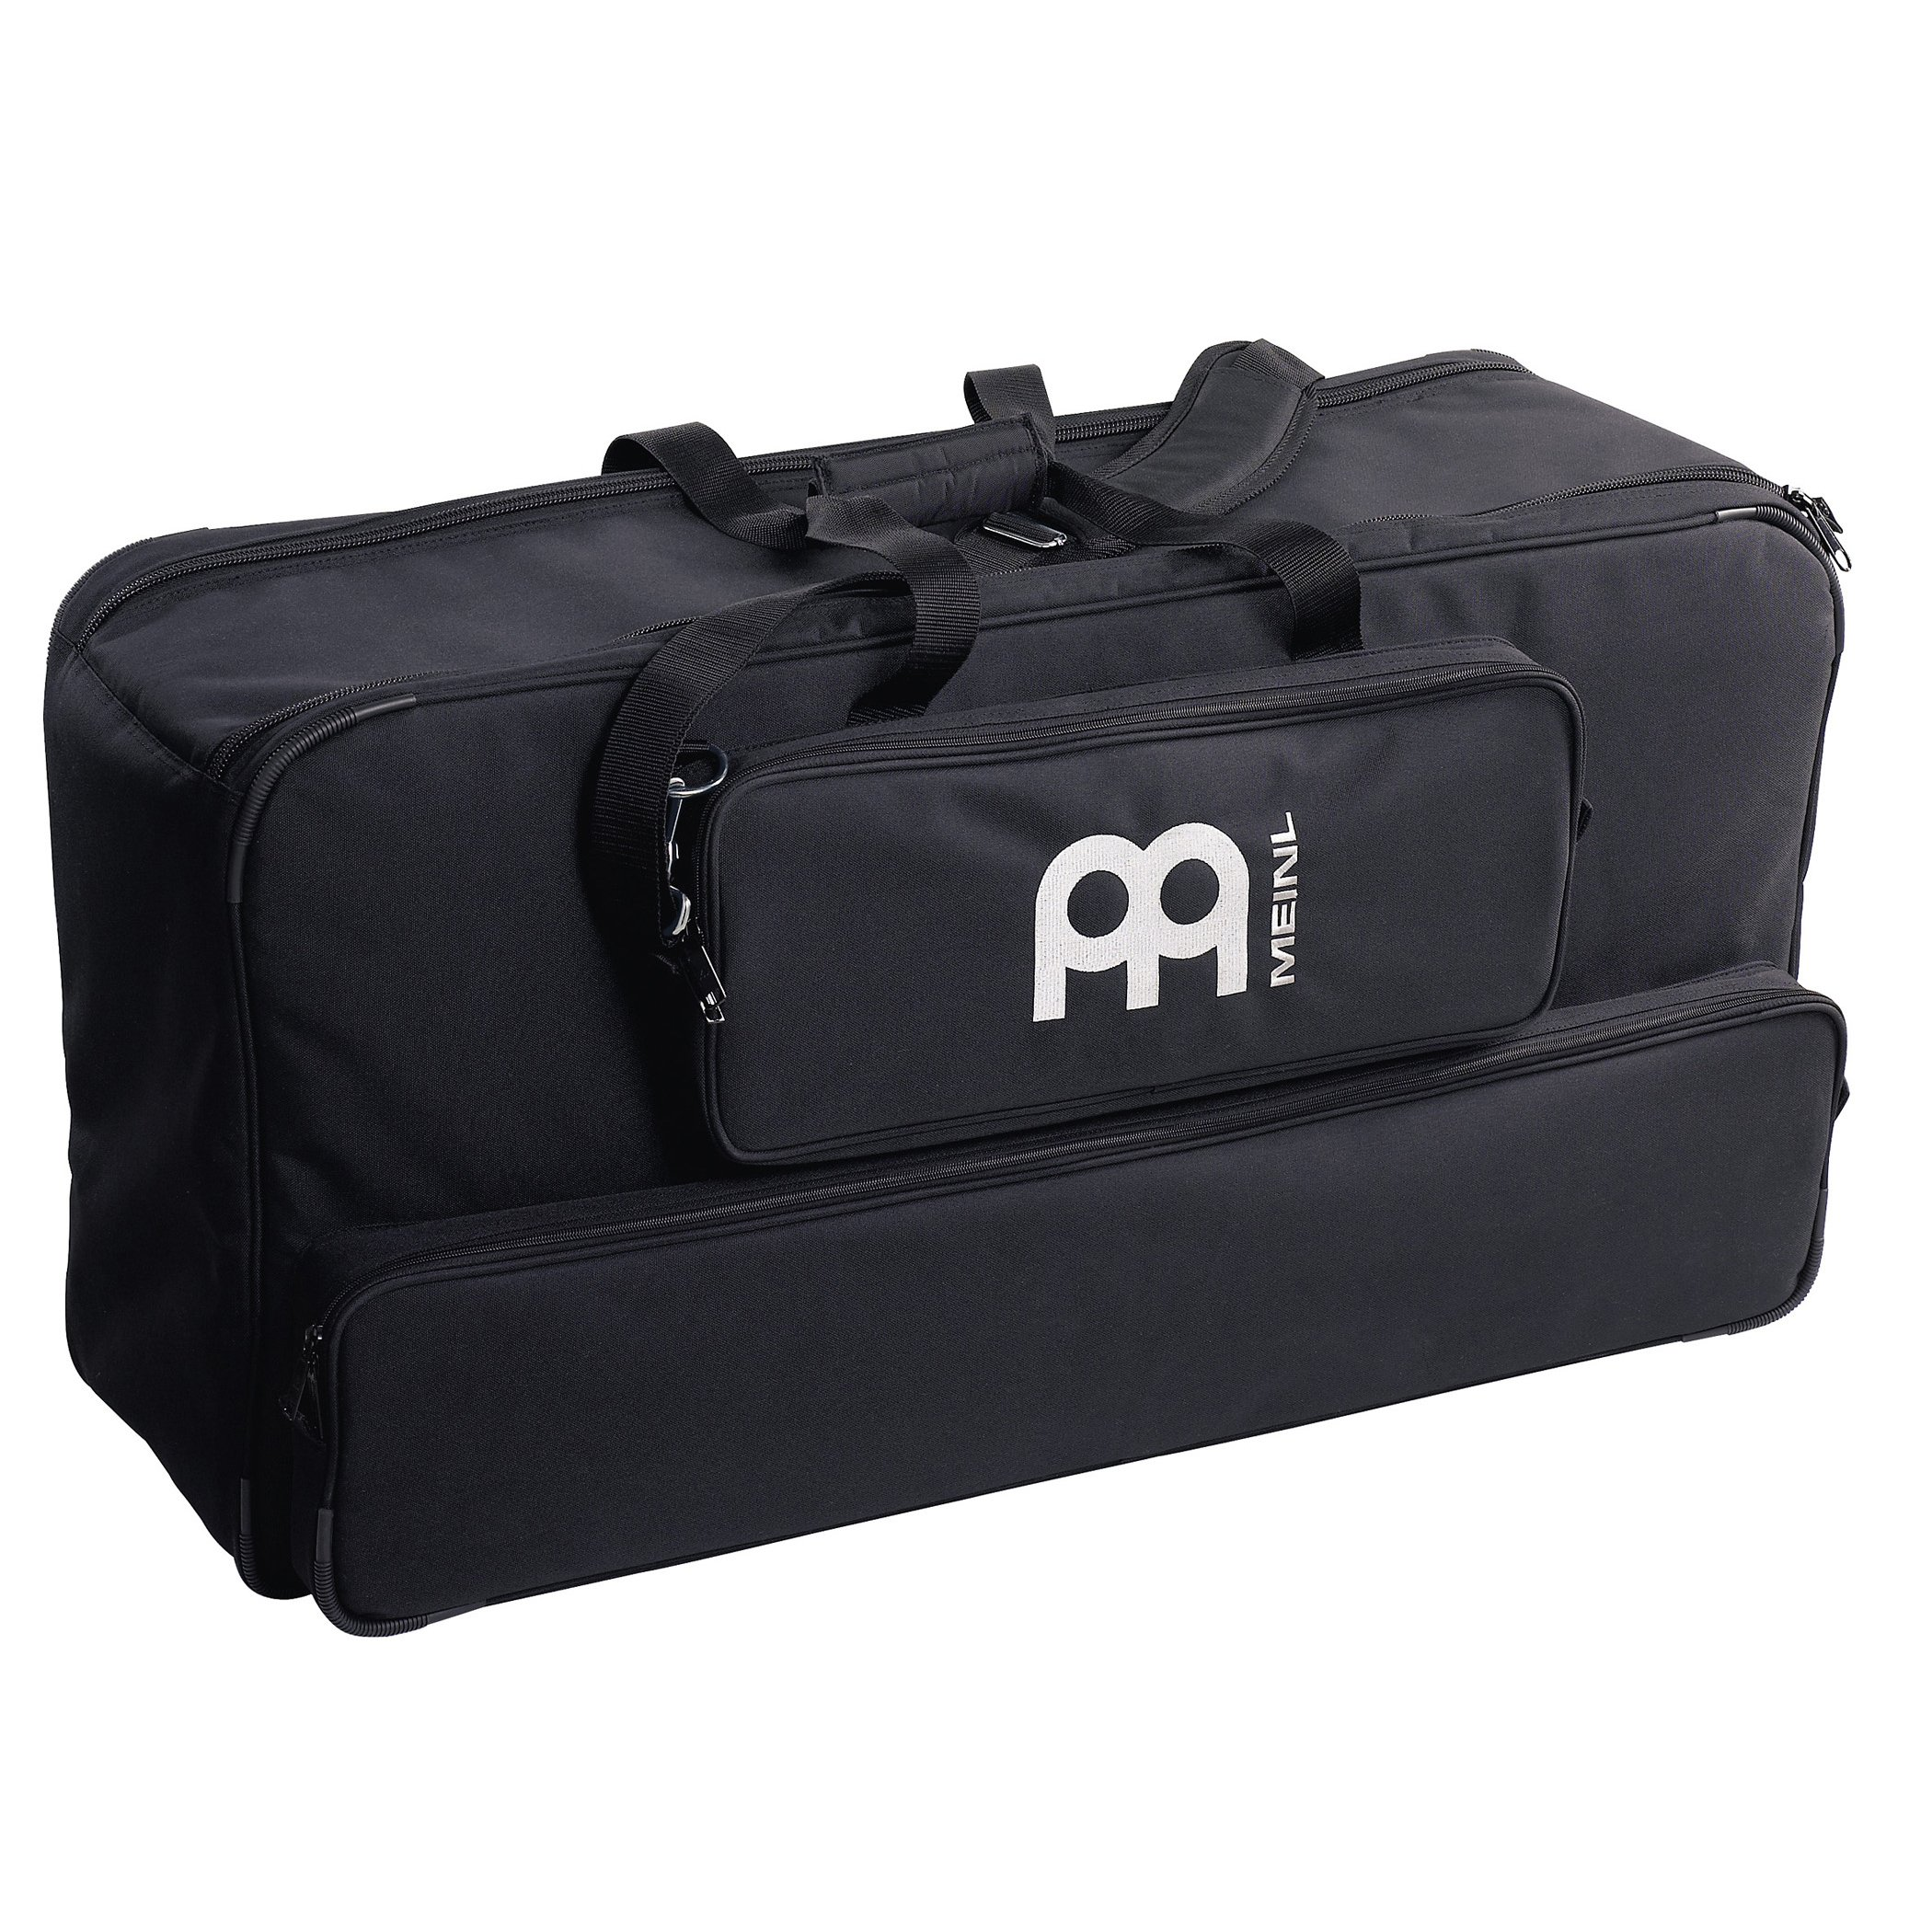 Meinl Percussion MTB Professional Timbale Bag, Black by Meinl Percussion